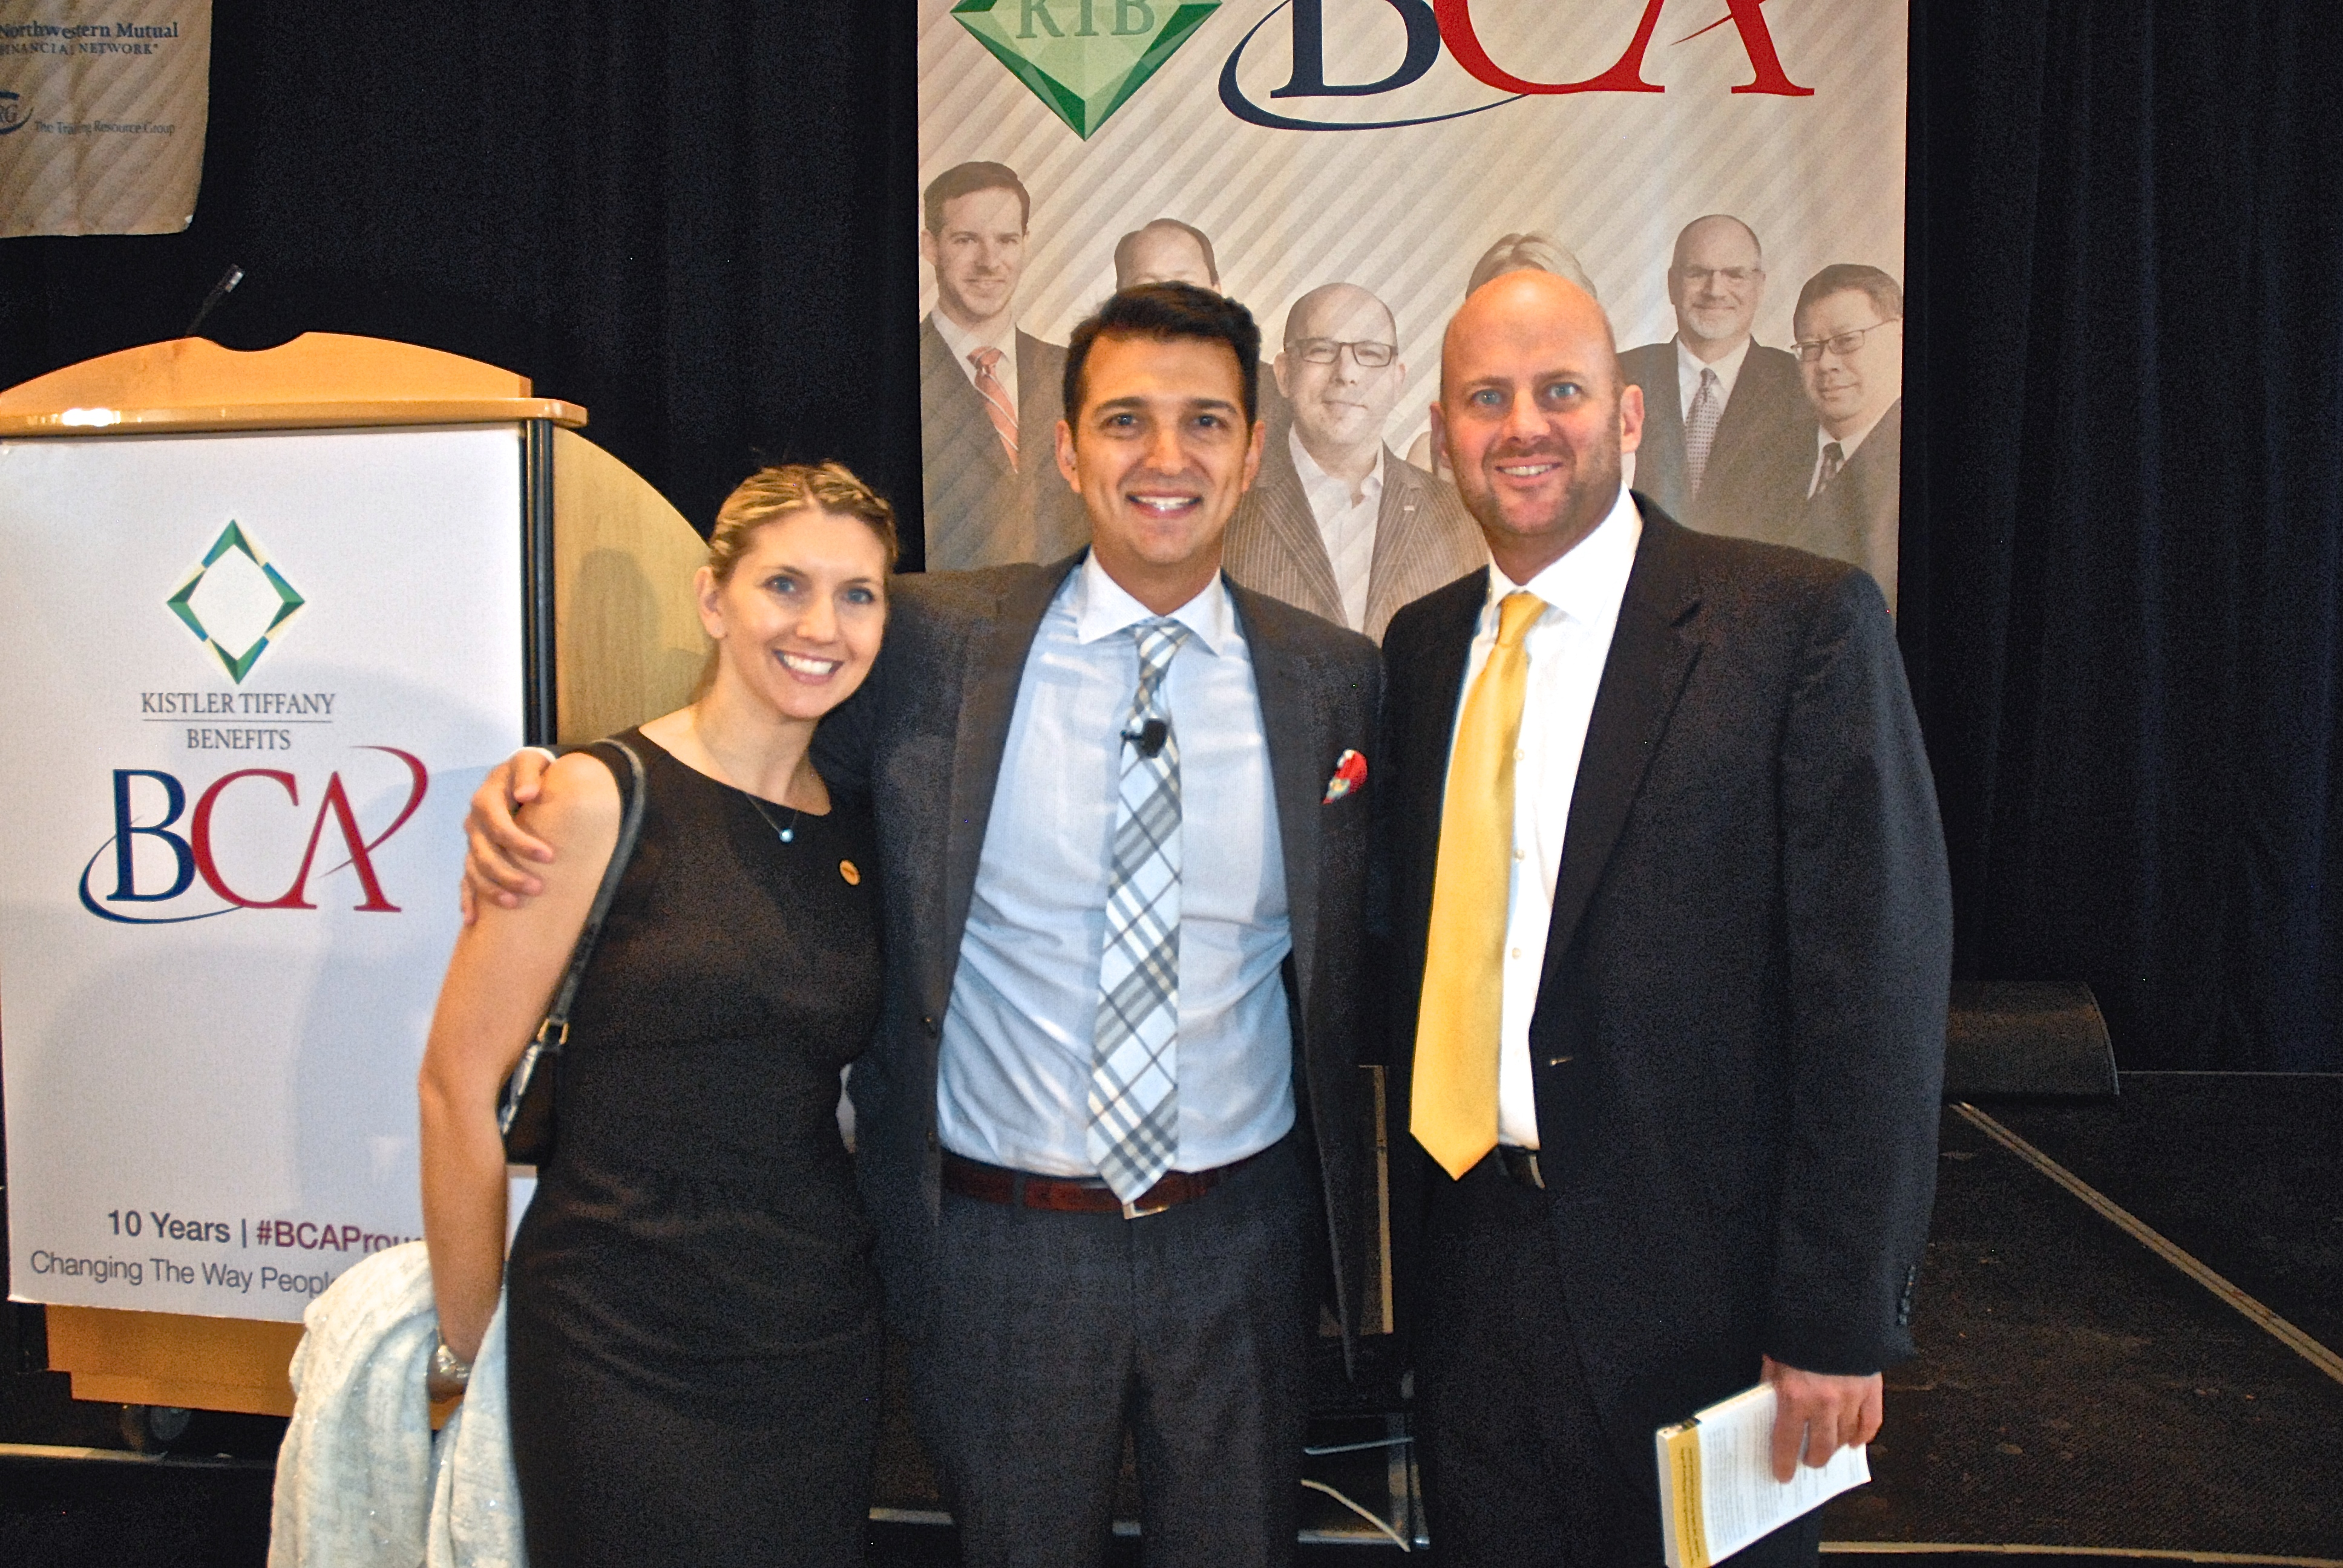 Thank You For Joining Us At The Bca Hospitality Breakfast